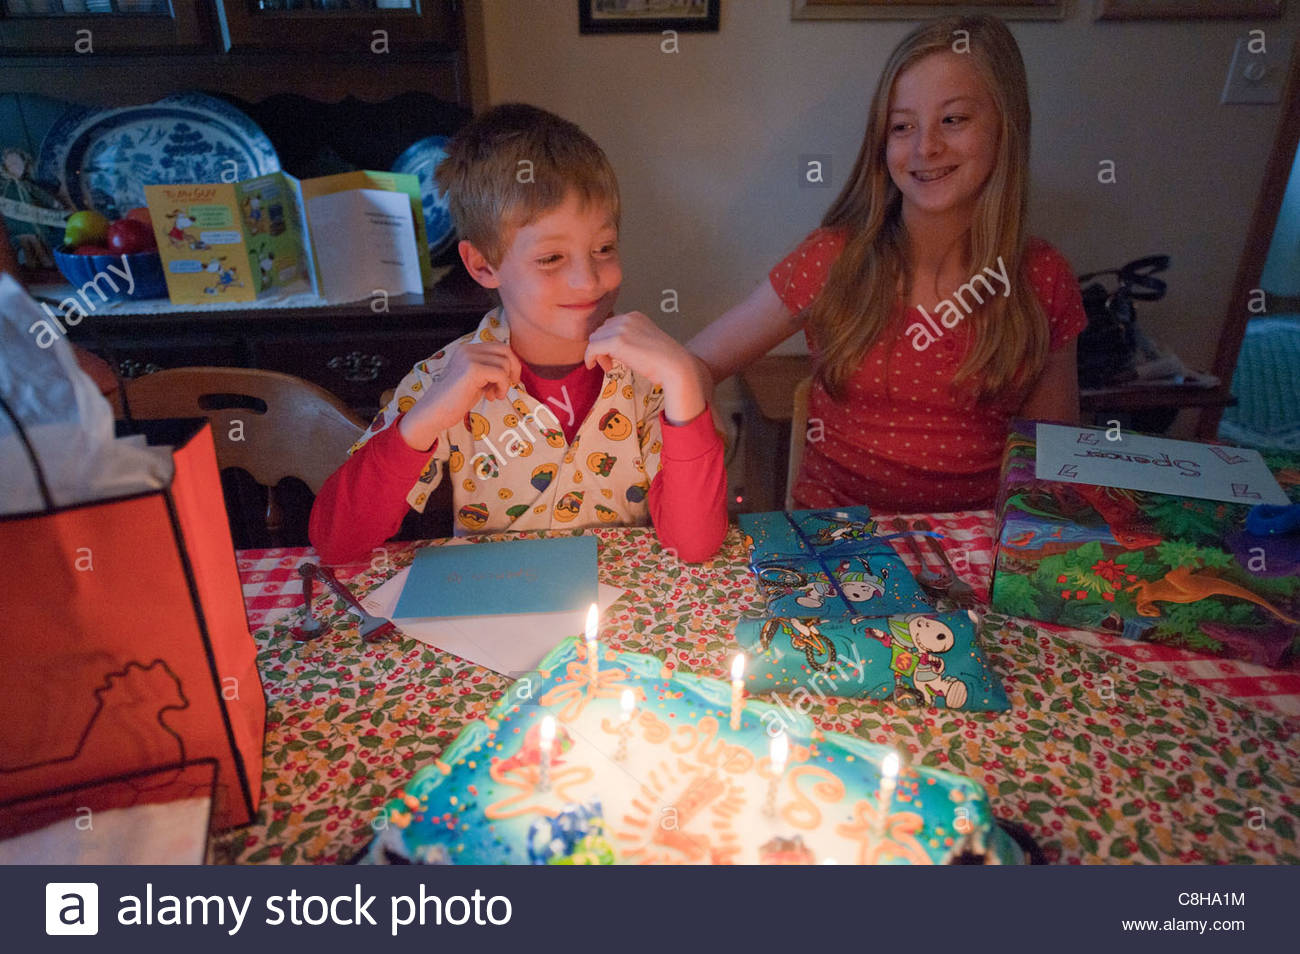 A young boy celebrates his 7th birthday with his older sister. - Stock Image